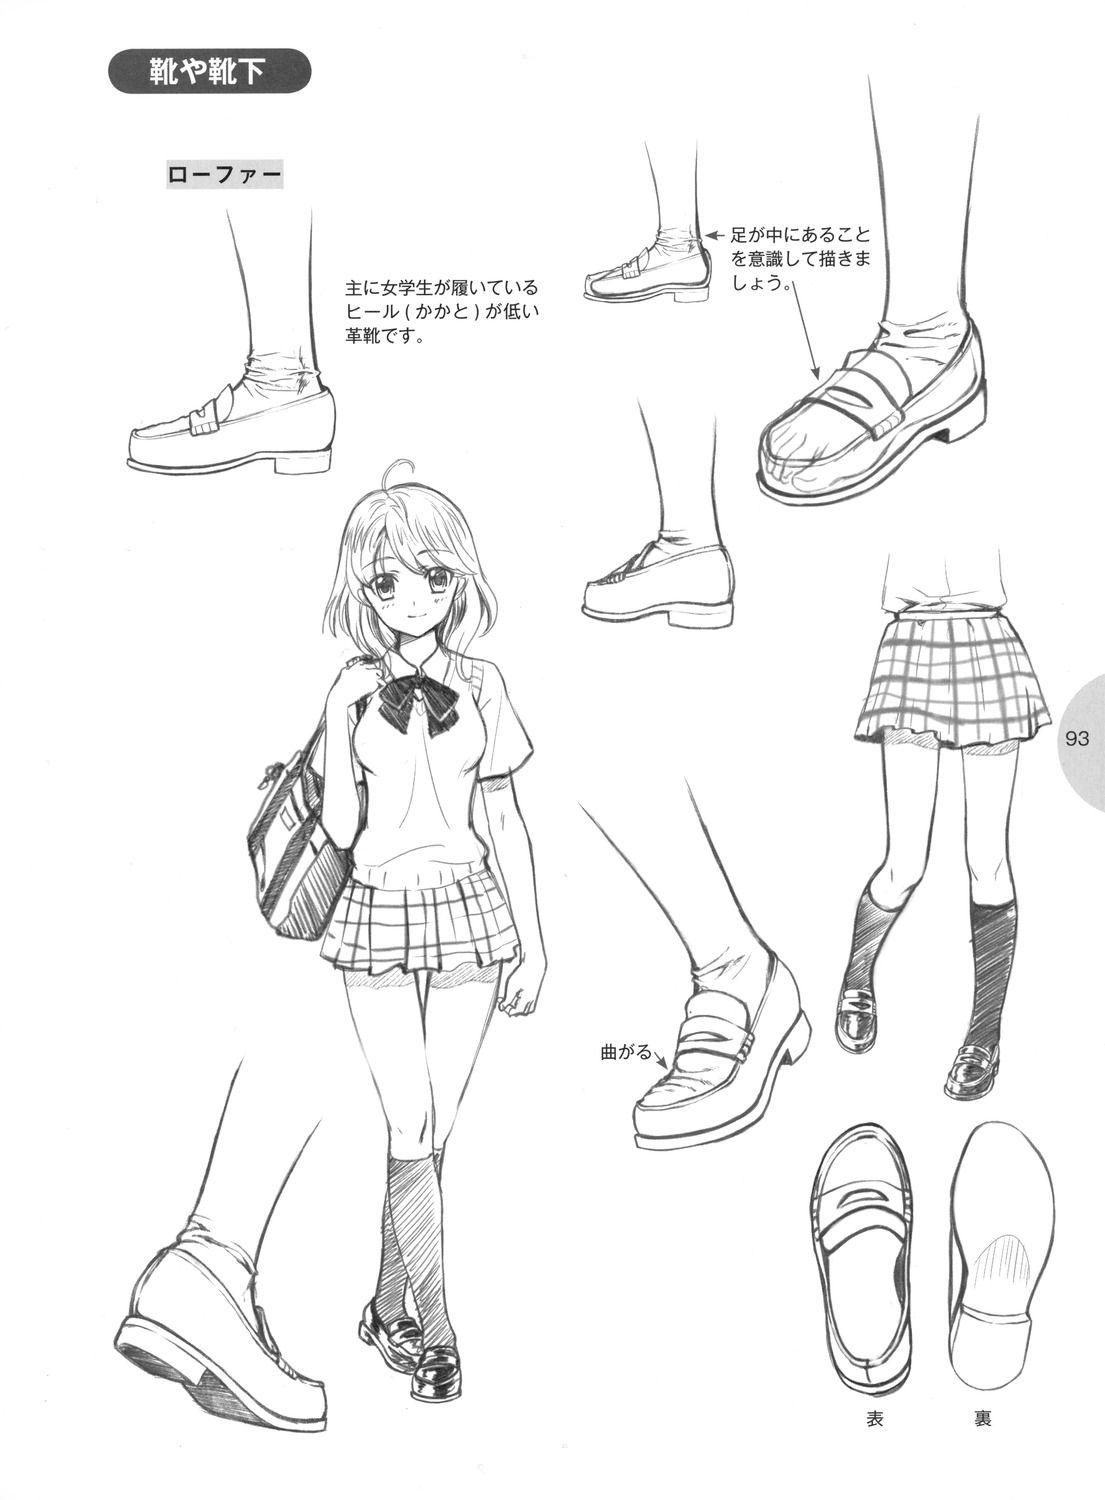 Schreibaby Of The Skies Manga Drawing Character Design Anime Drawings